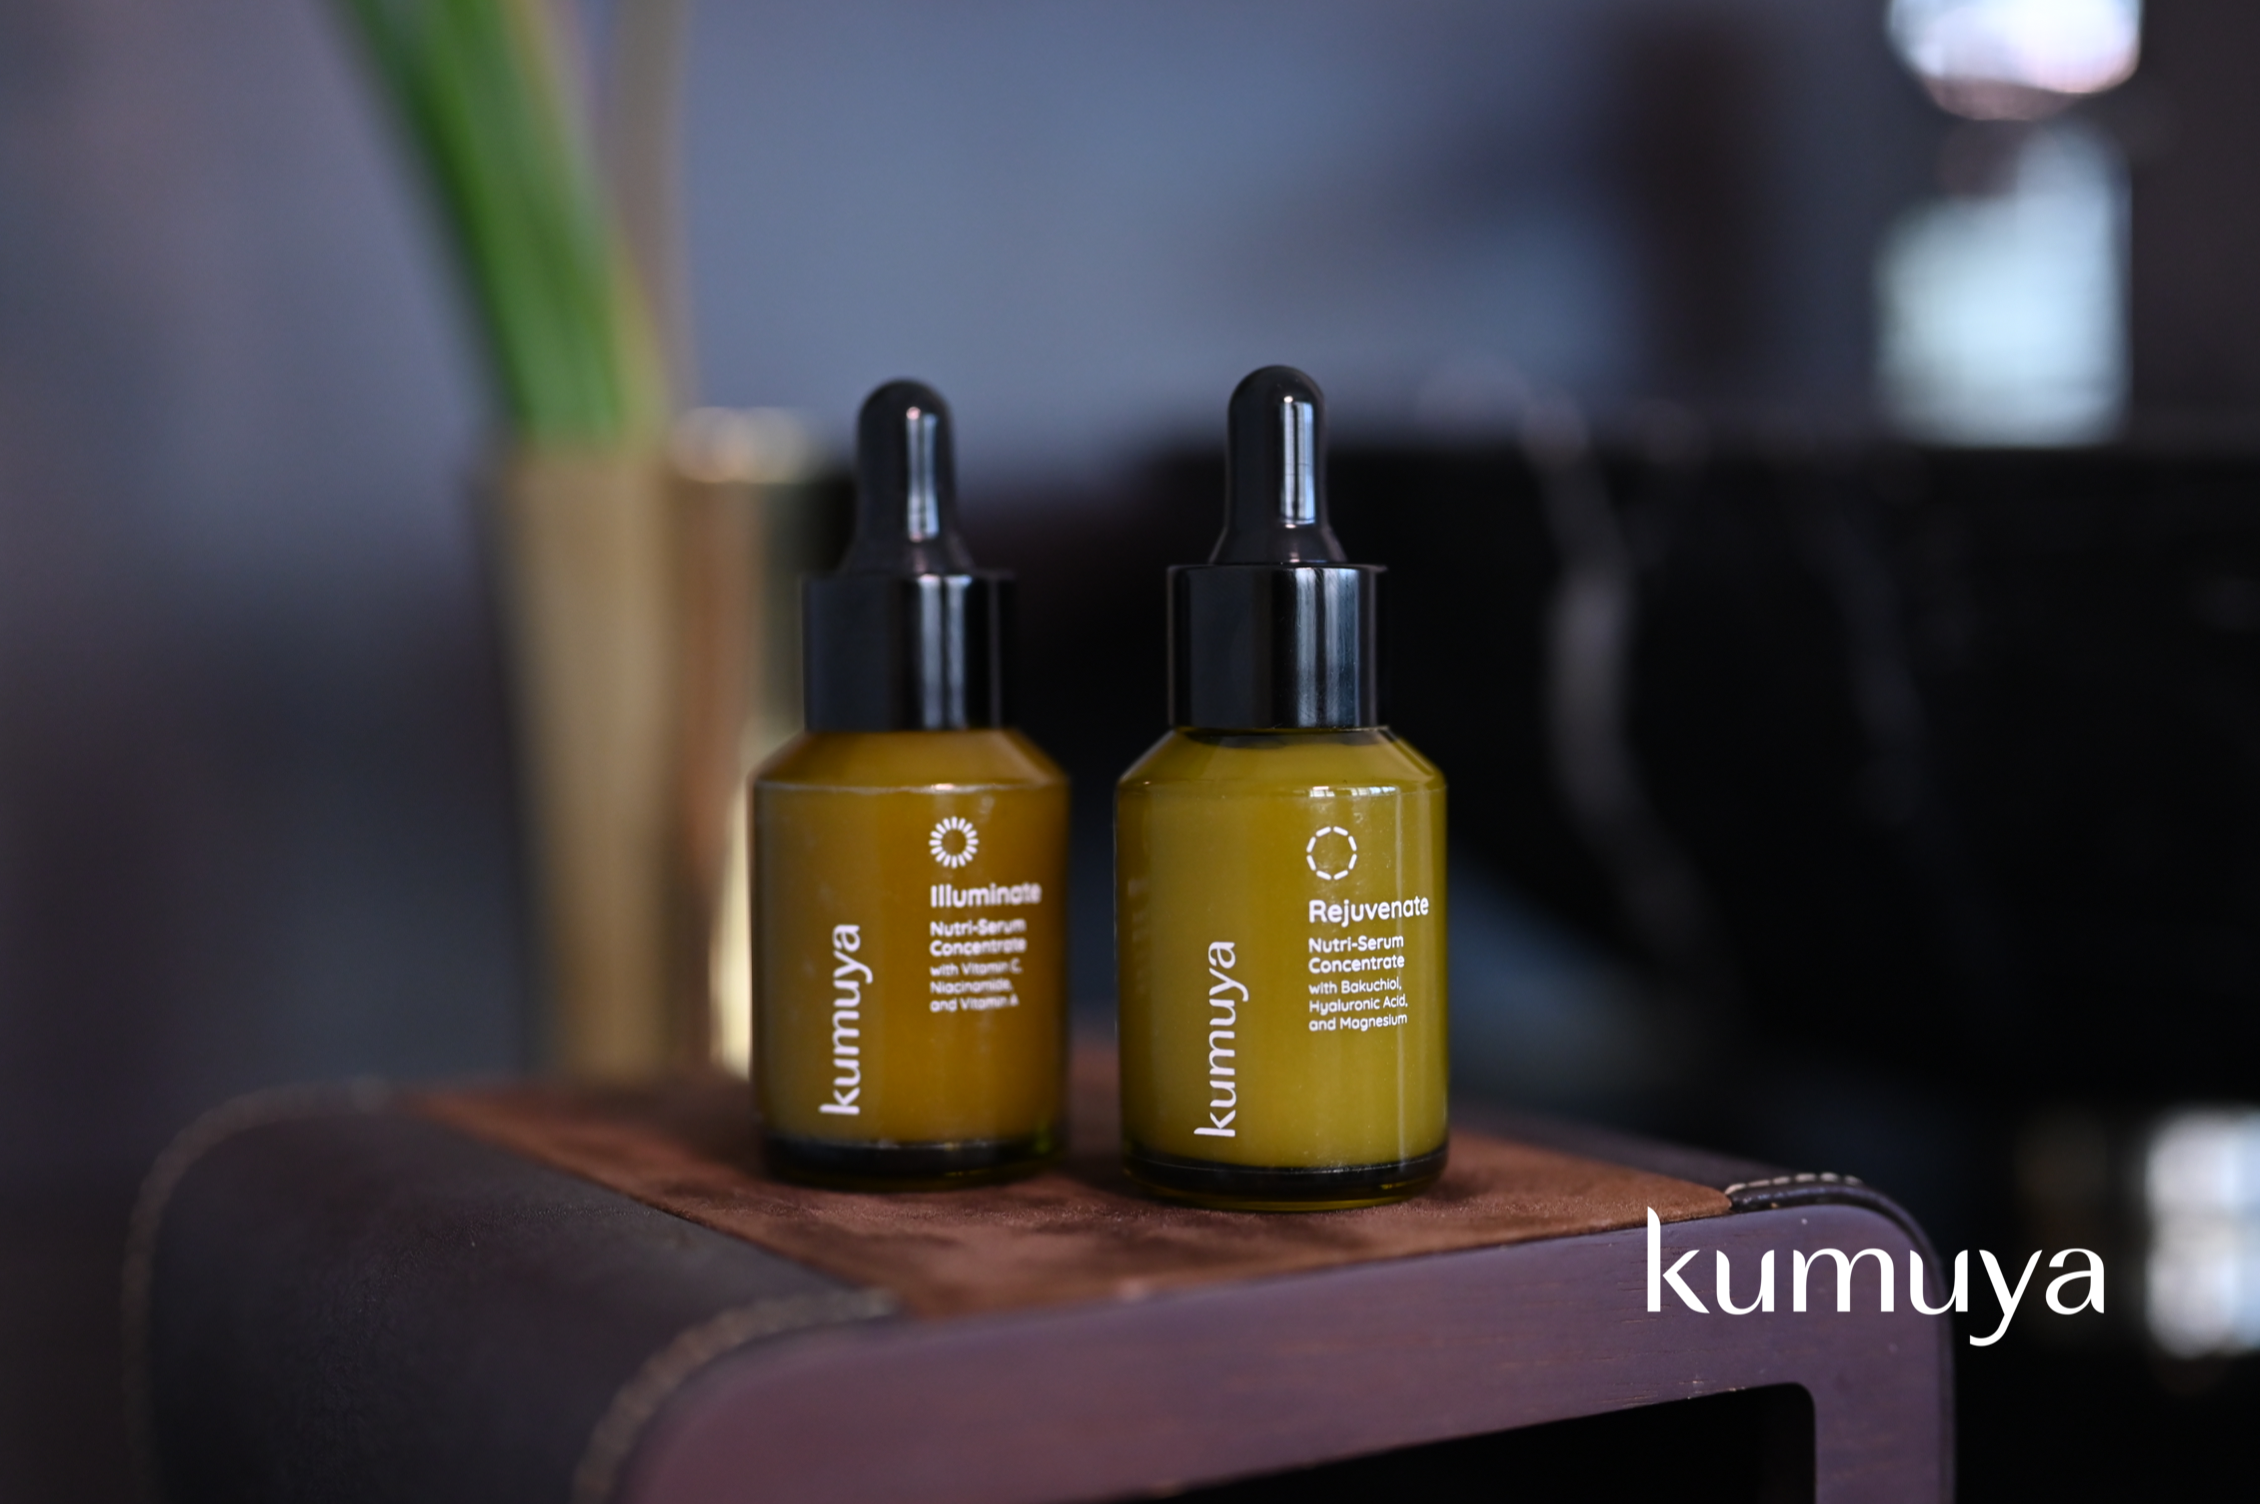 Kumuya Poised to Revolutionize Anti-Aging Skincare with Launch of Nutrition-driven Products